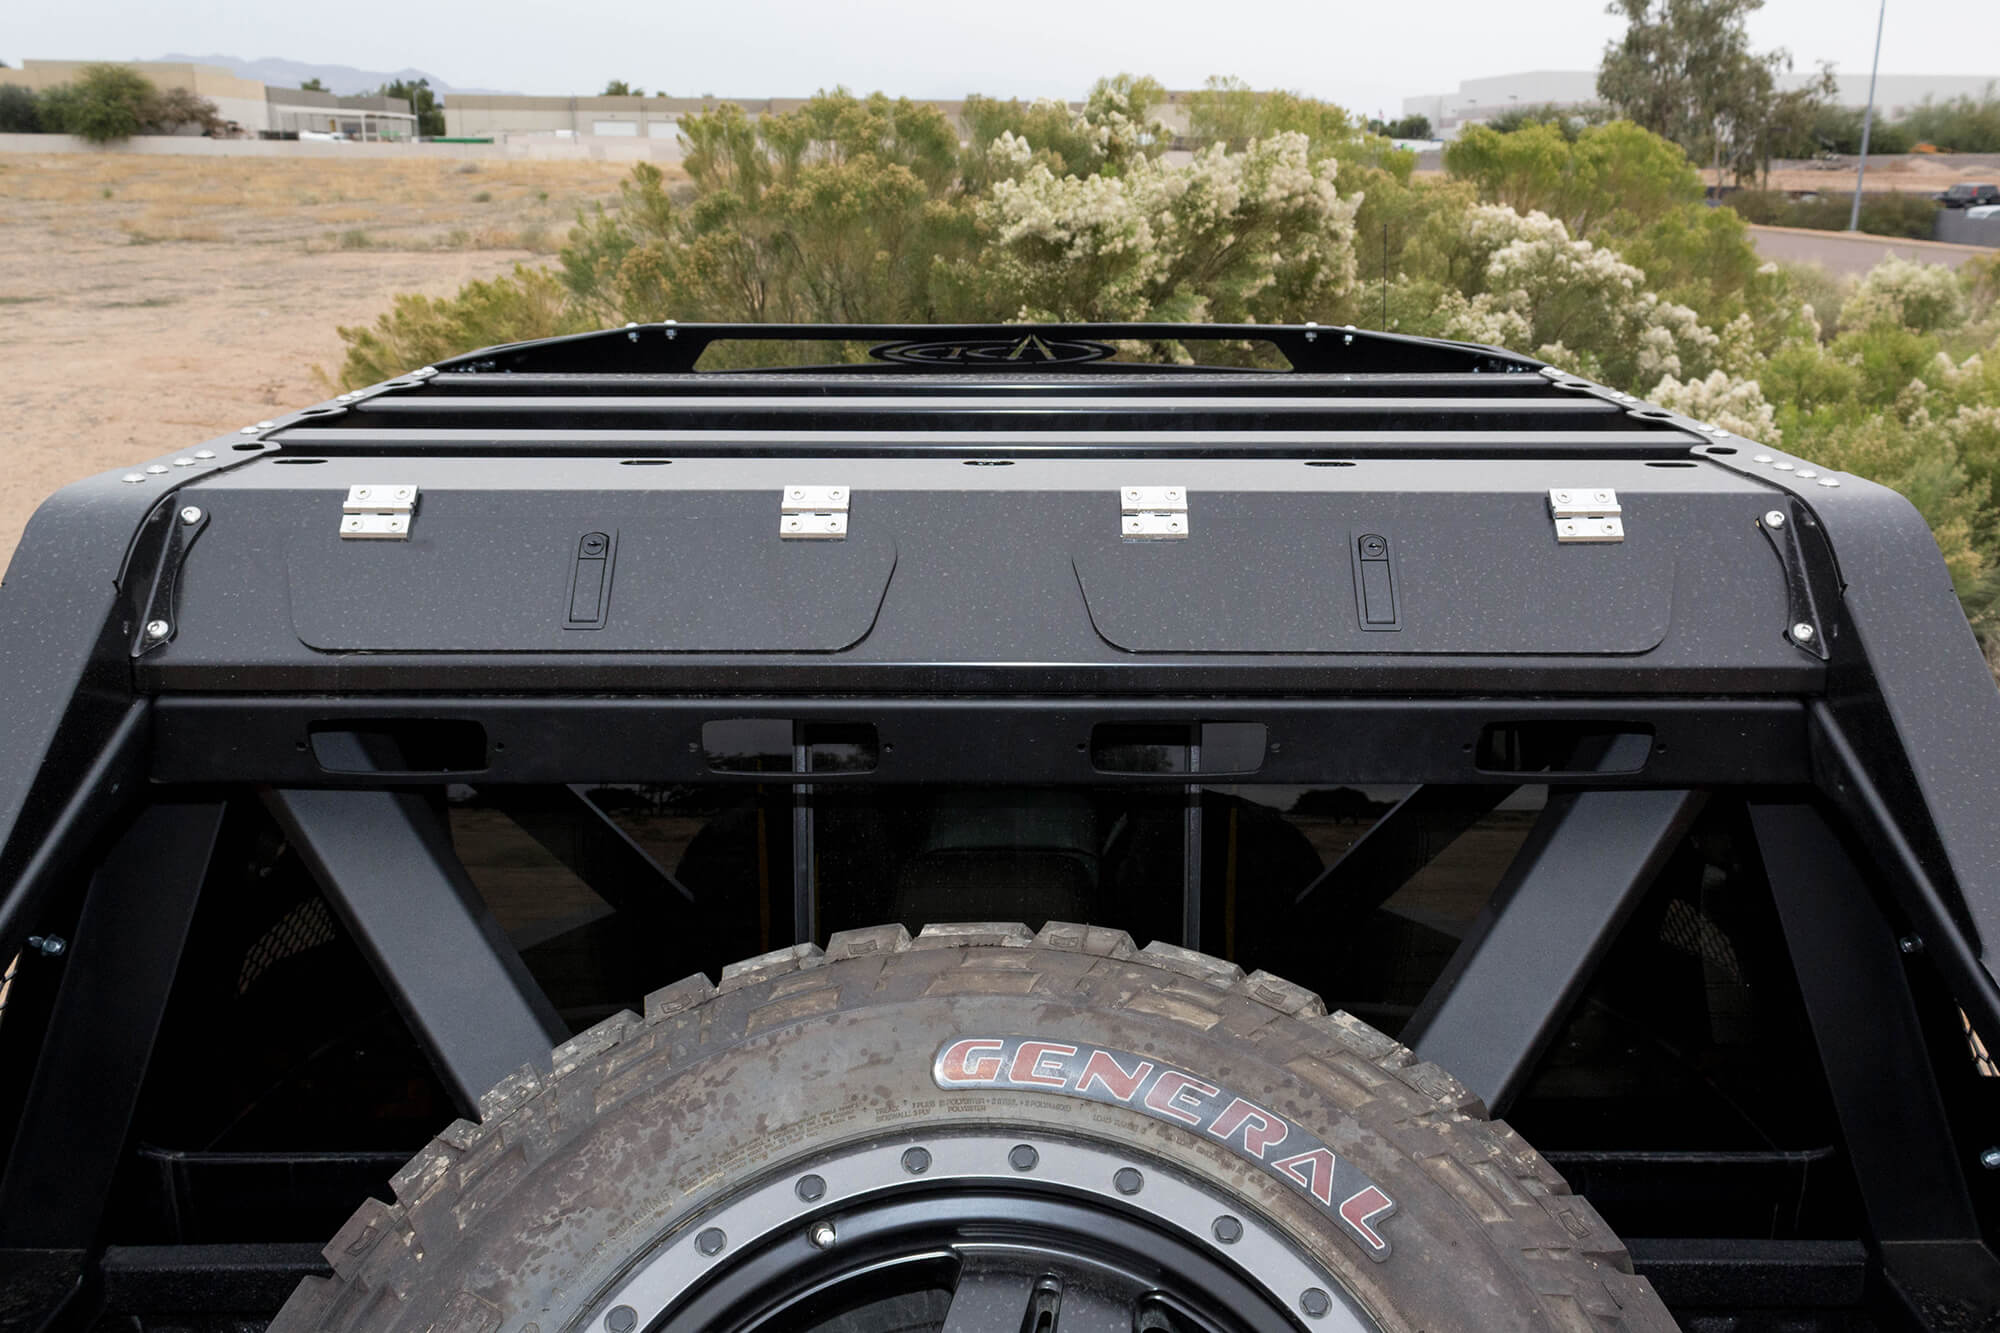 Addictive Desert Designs F-250/F-350 Honey Badger Roof Rack Add on (1999-2016)